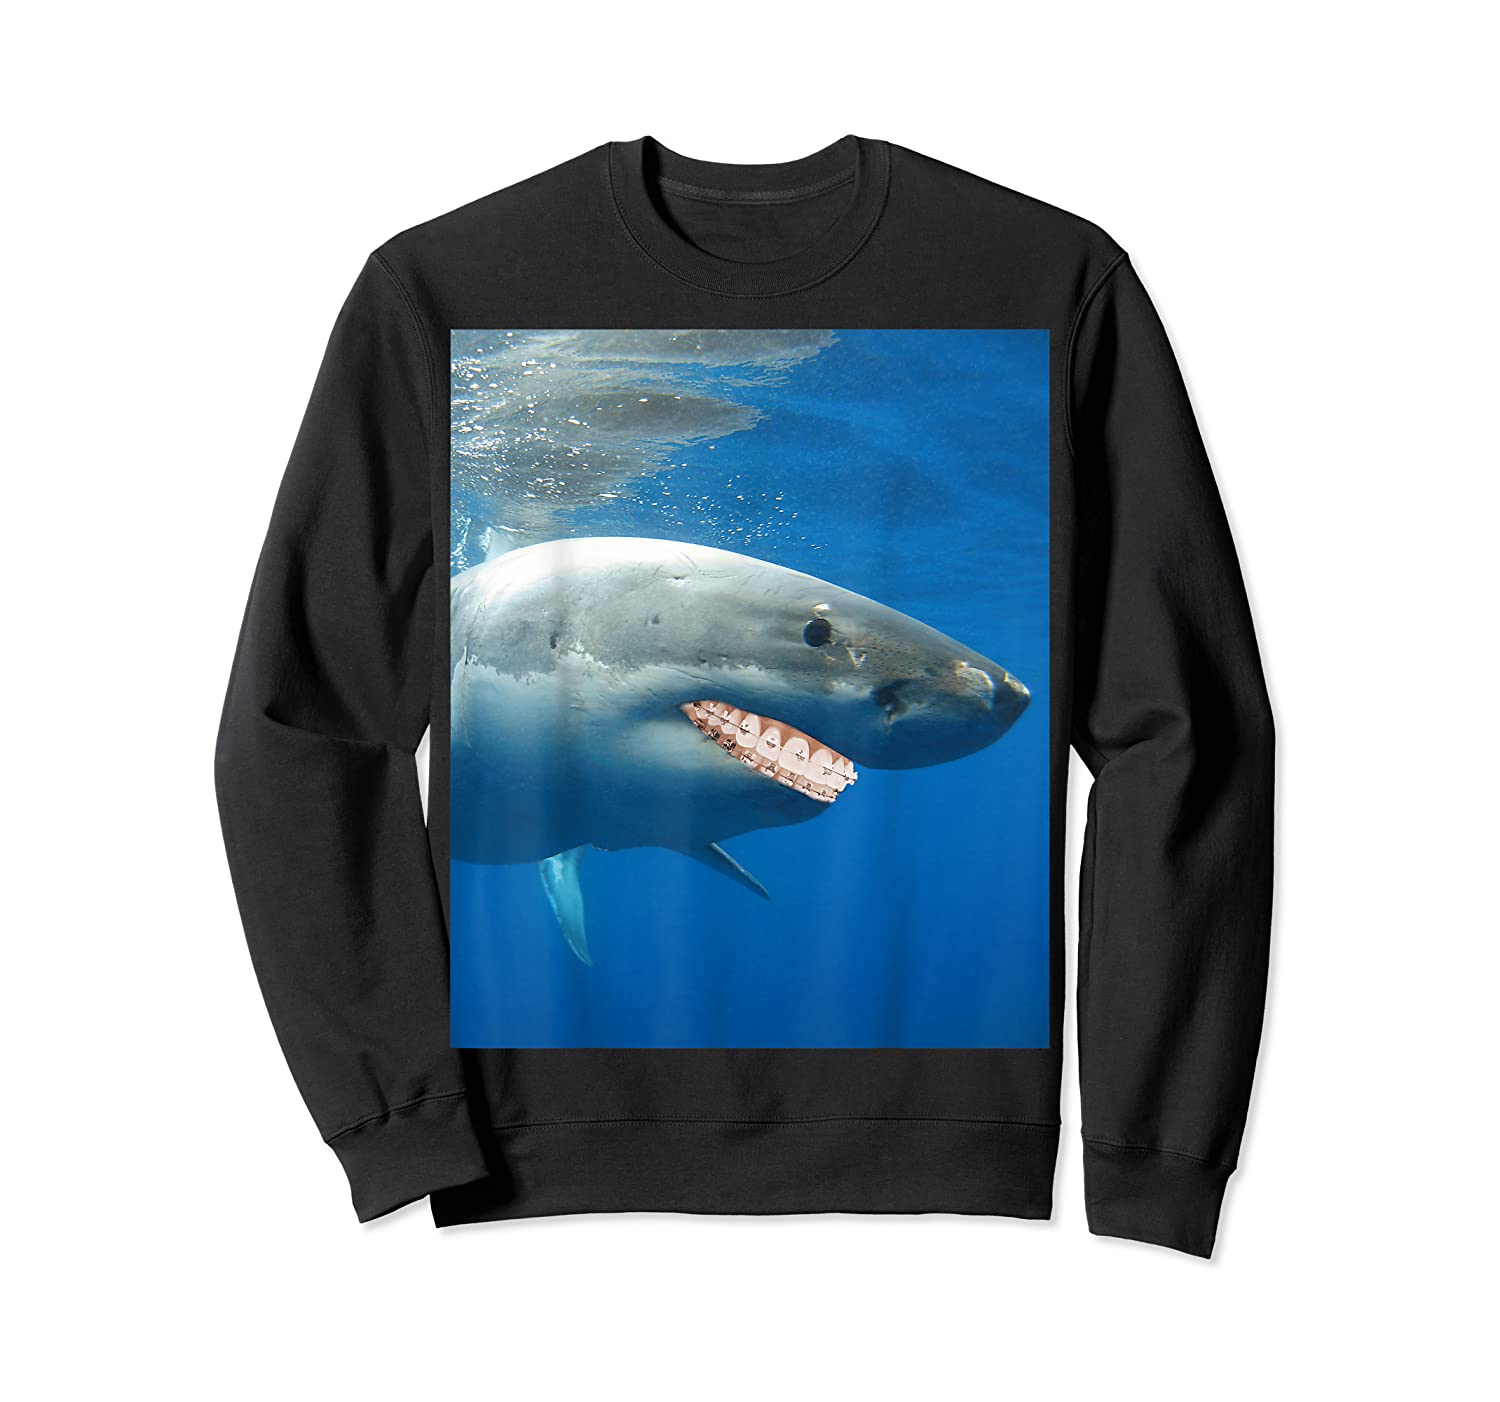 Great Shark With Braces And Human Th Shirts Crewneck Sweater